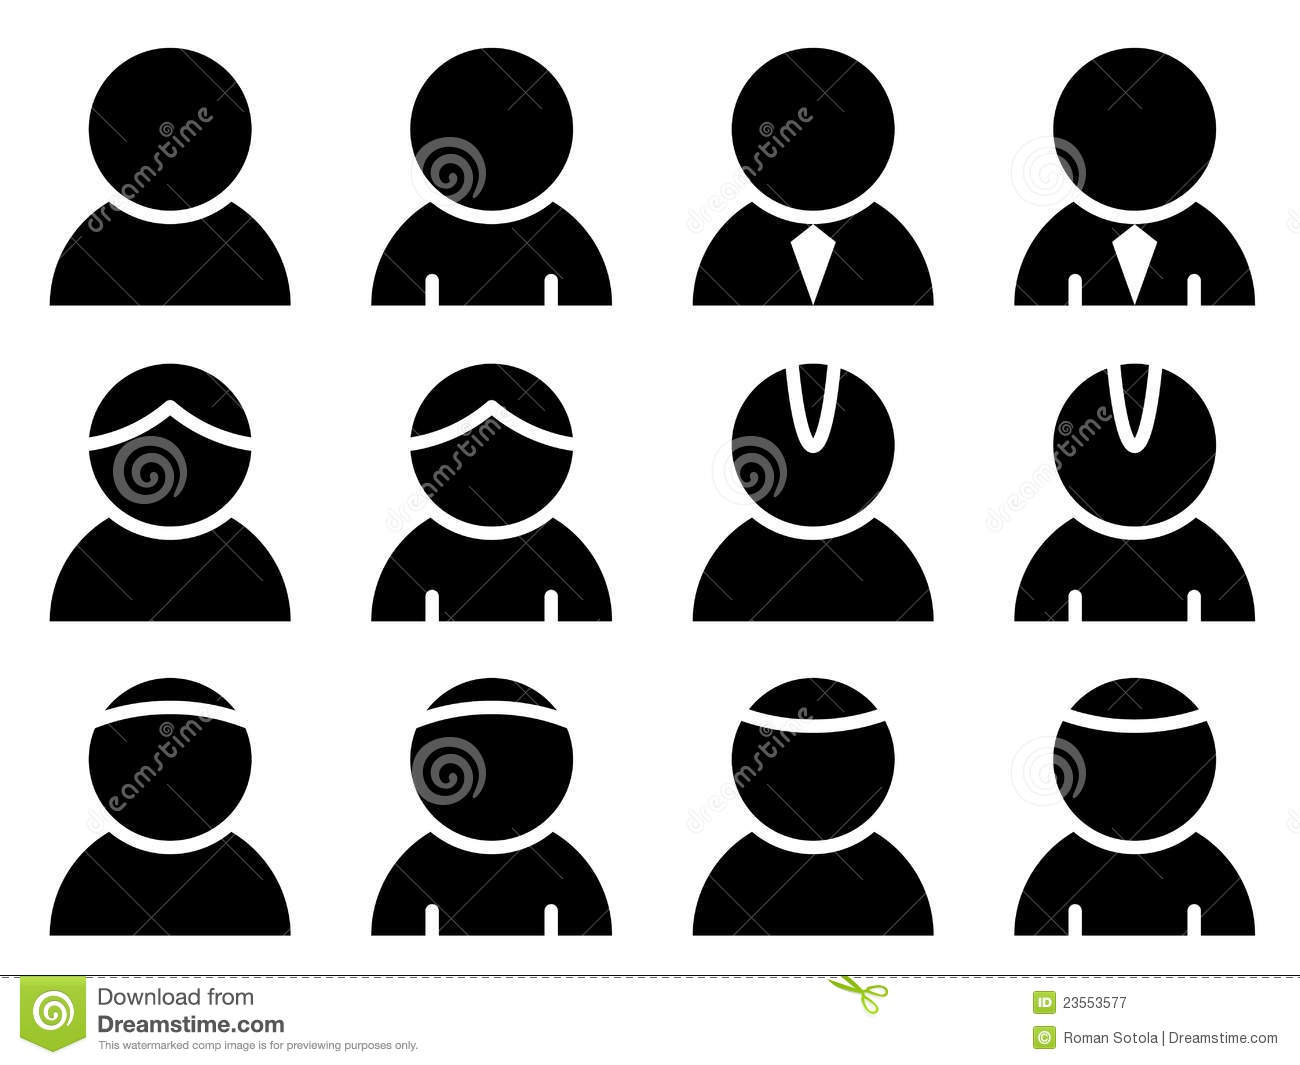 Black Person Icons Royalty Free Stock Photography - Image: 23553577